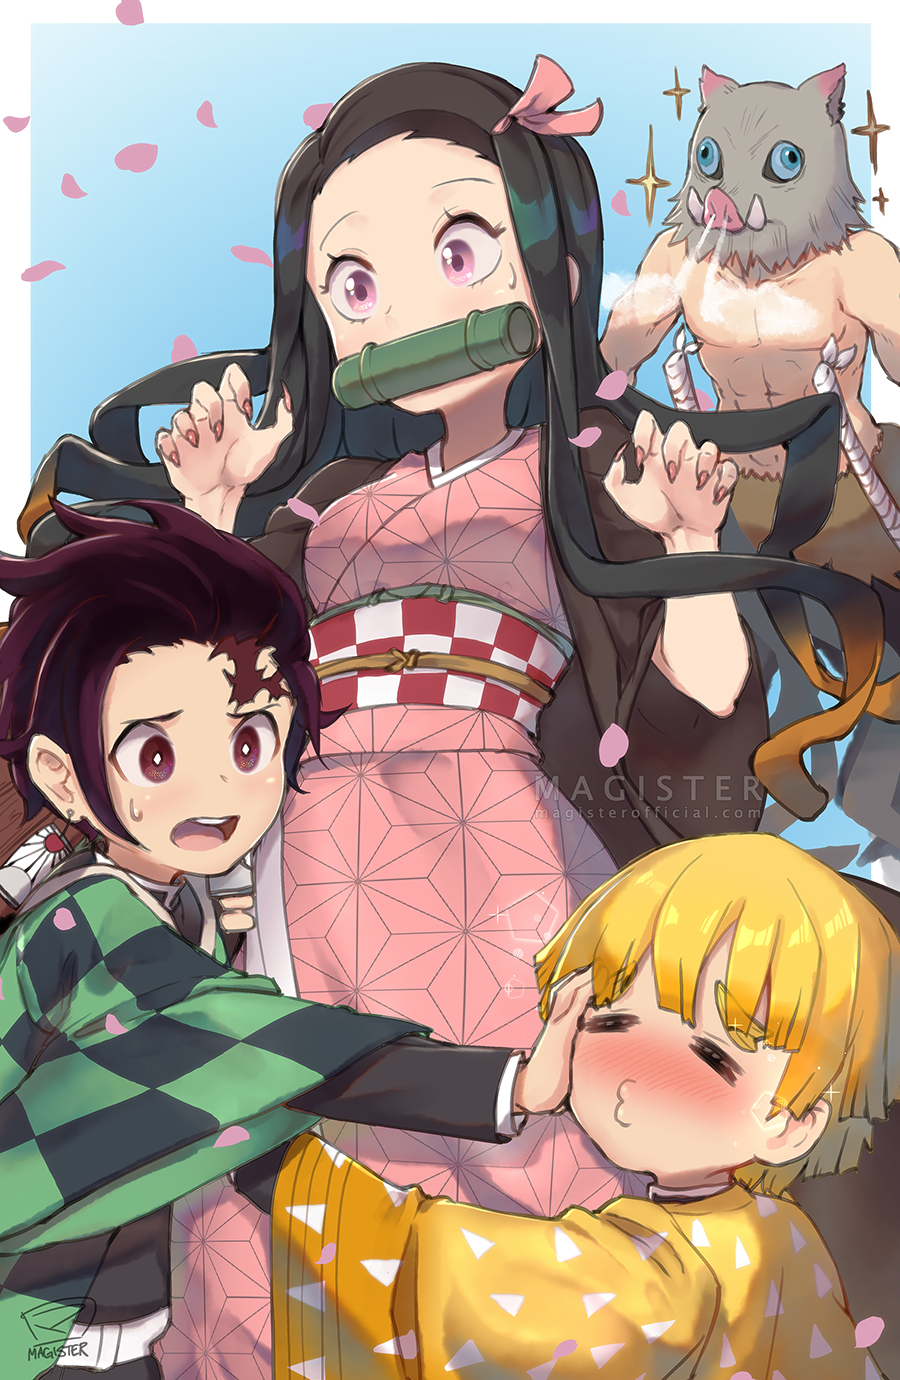 1girl 3boys agatsuma_zenitsu bamboo bit_gag black_hair boar_mask breasts checkered_obi chibi fingernails forehead gag haori hashibira_inosuke highres japanese_clothes kamado_nezuko kamado_tanjirou kimetsu_no_yaiba kimono long_hair magister_(medical_whiskey) male_focus multicolored_hair multiple_boys orange_hair pink_eyes pink_kimono pink_ribbon purple_hair ribbon scar sharp_fingernails small_breasts sweatdrop two-tone_hair violet_eyes watermark